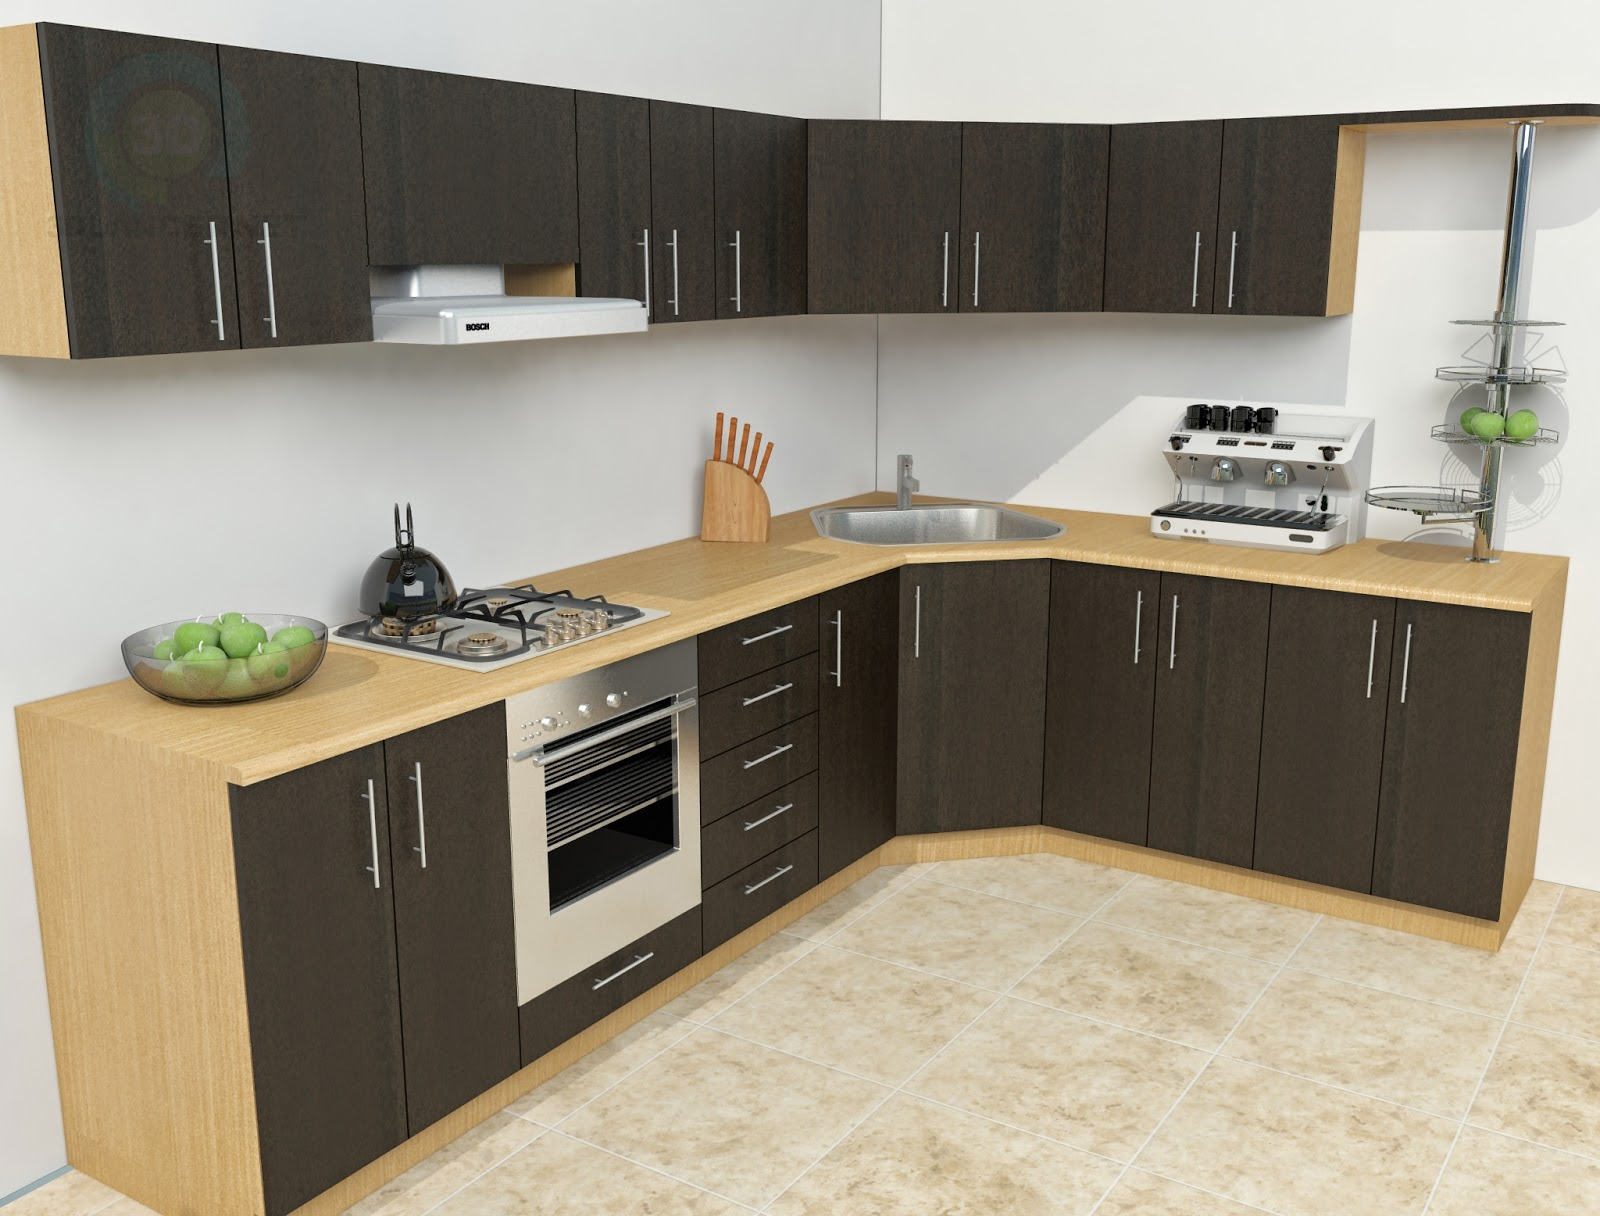 House Kitchen Model Of 28 Model Kitchen Designs Kitchen Model Homes